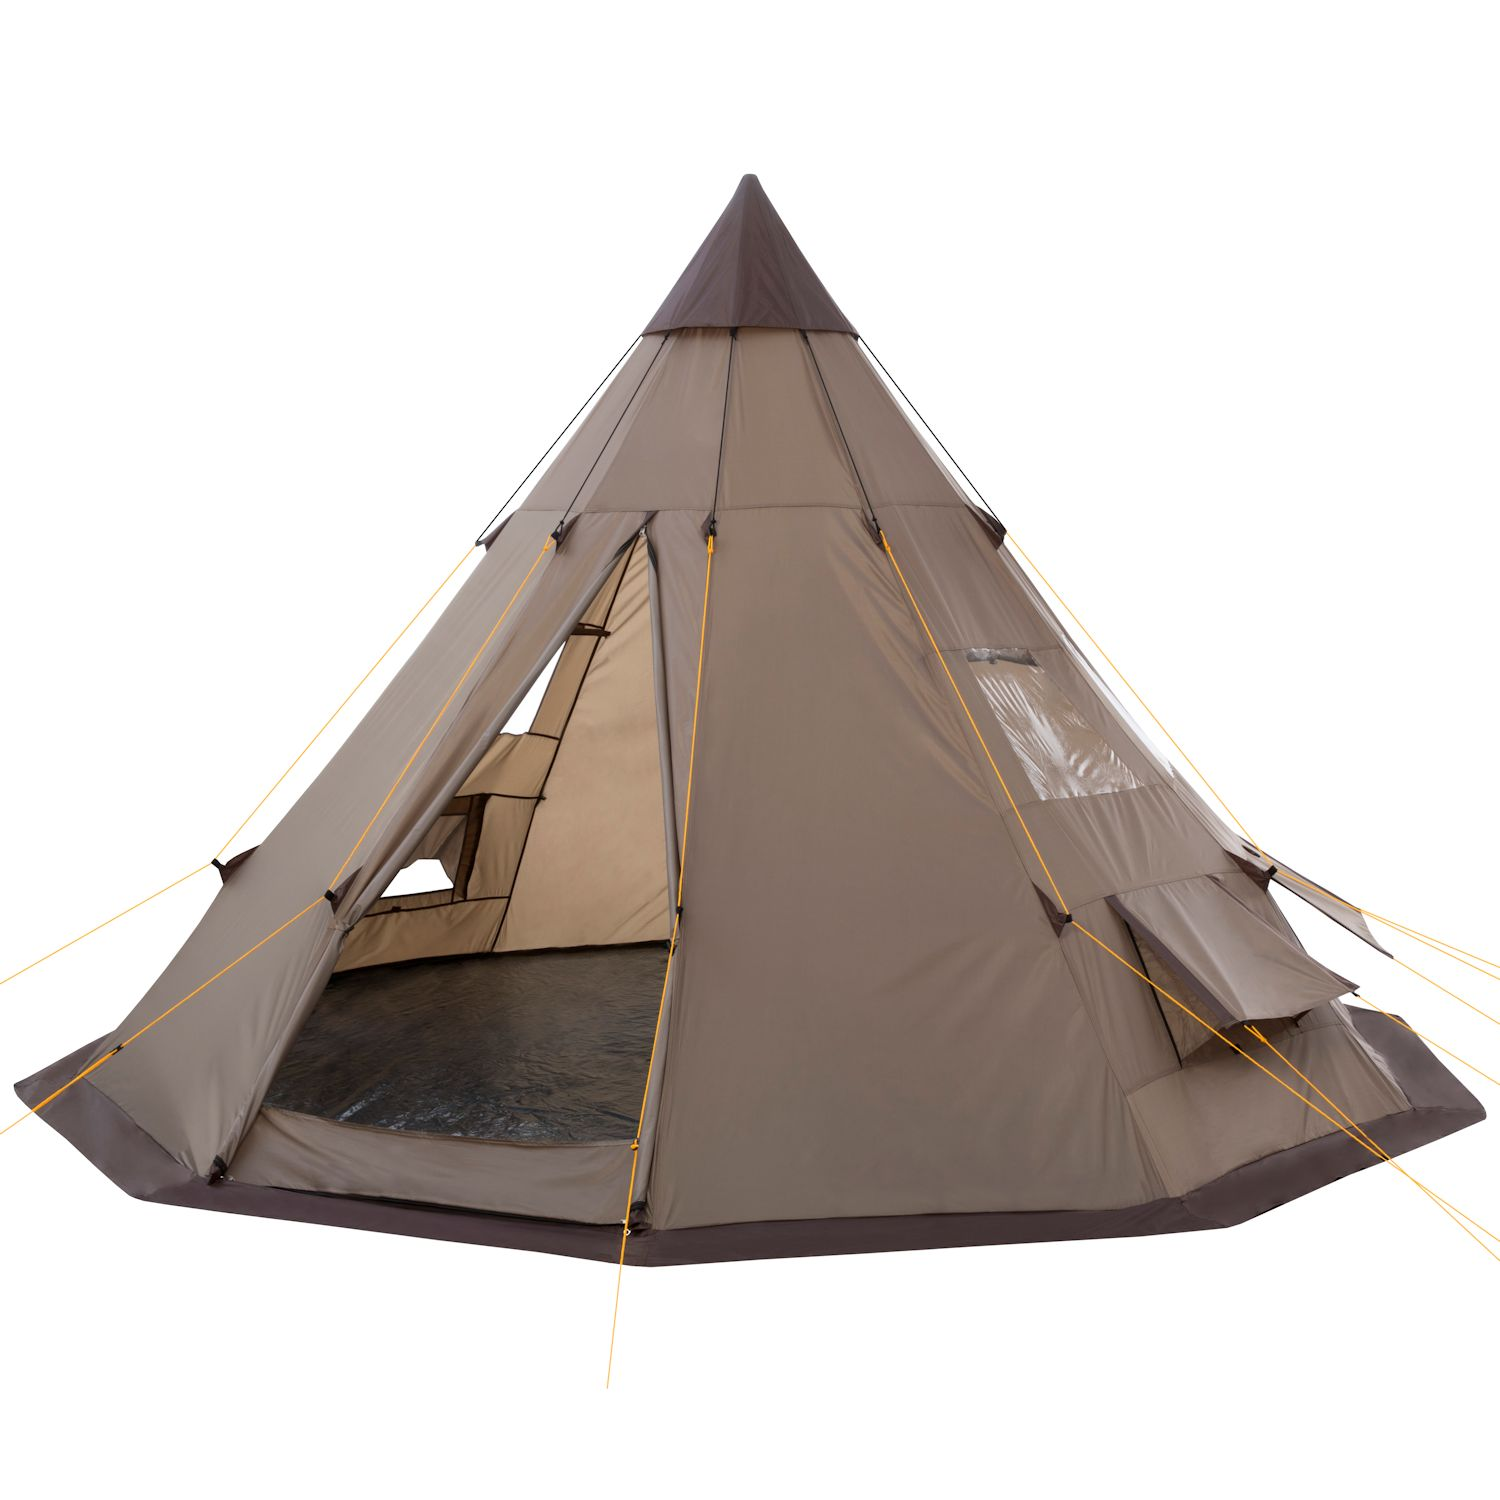 tipi zelt wigwam indianerzelt indianertipi tippi neu ebay. Black Bedroom Furniture Sets. Home Design Ideas